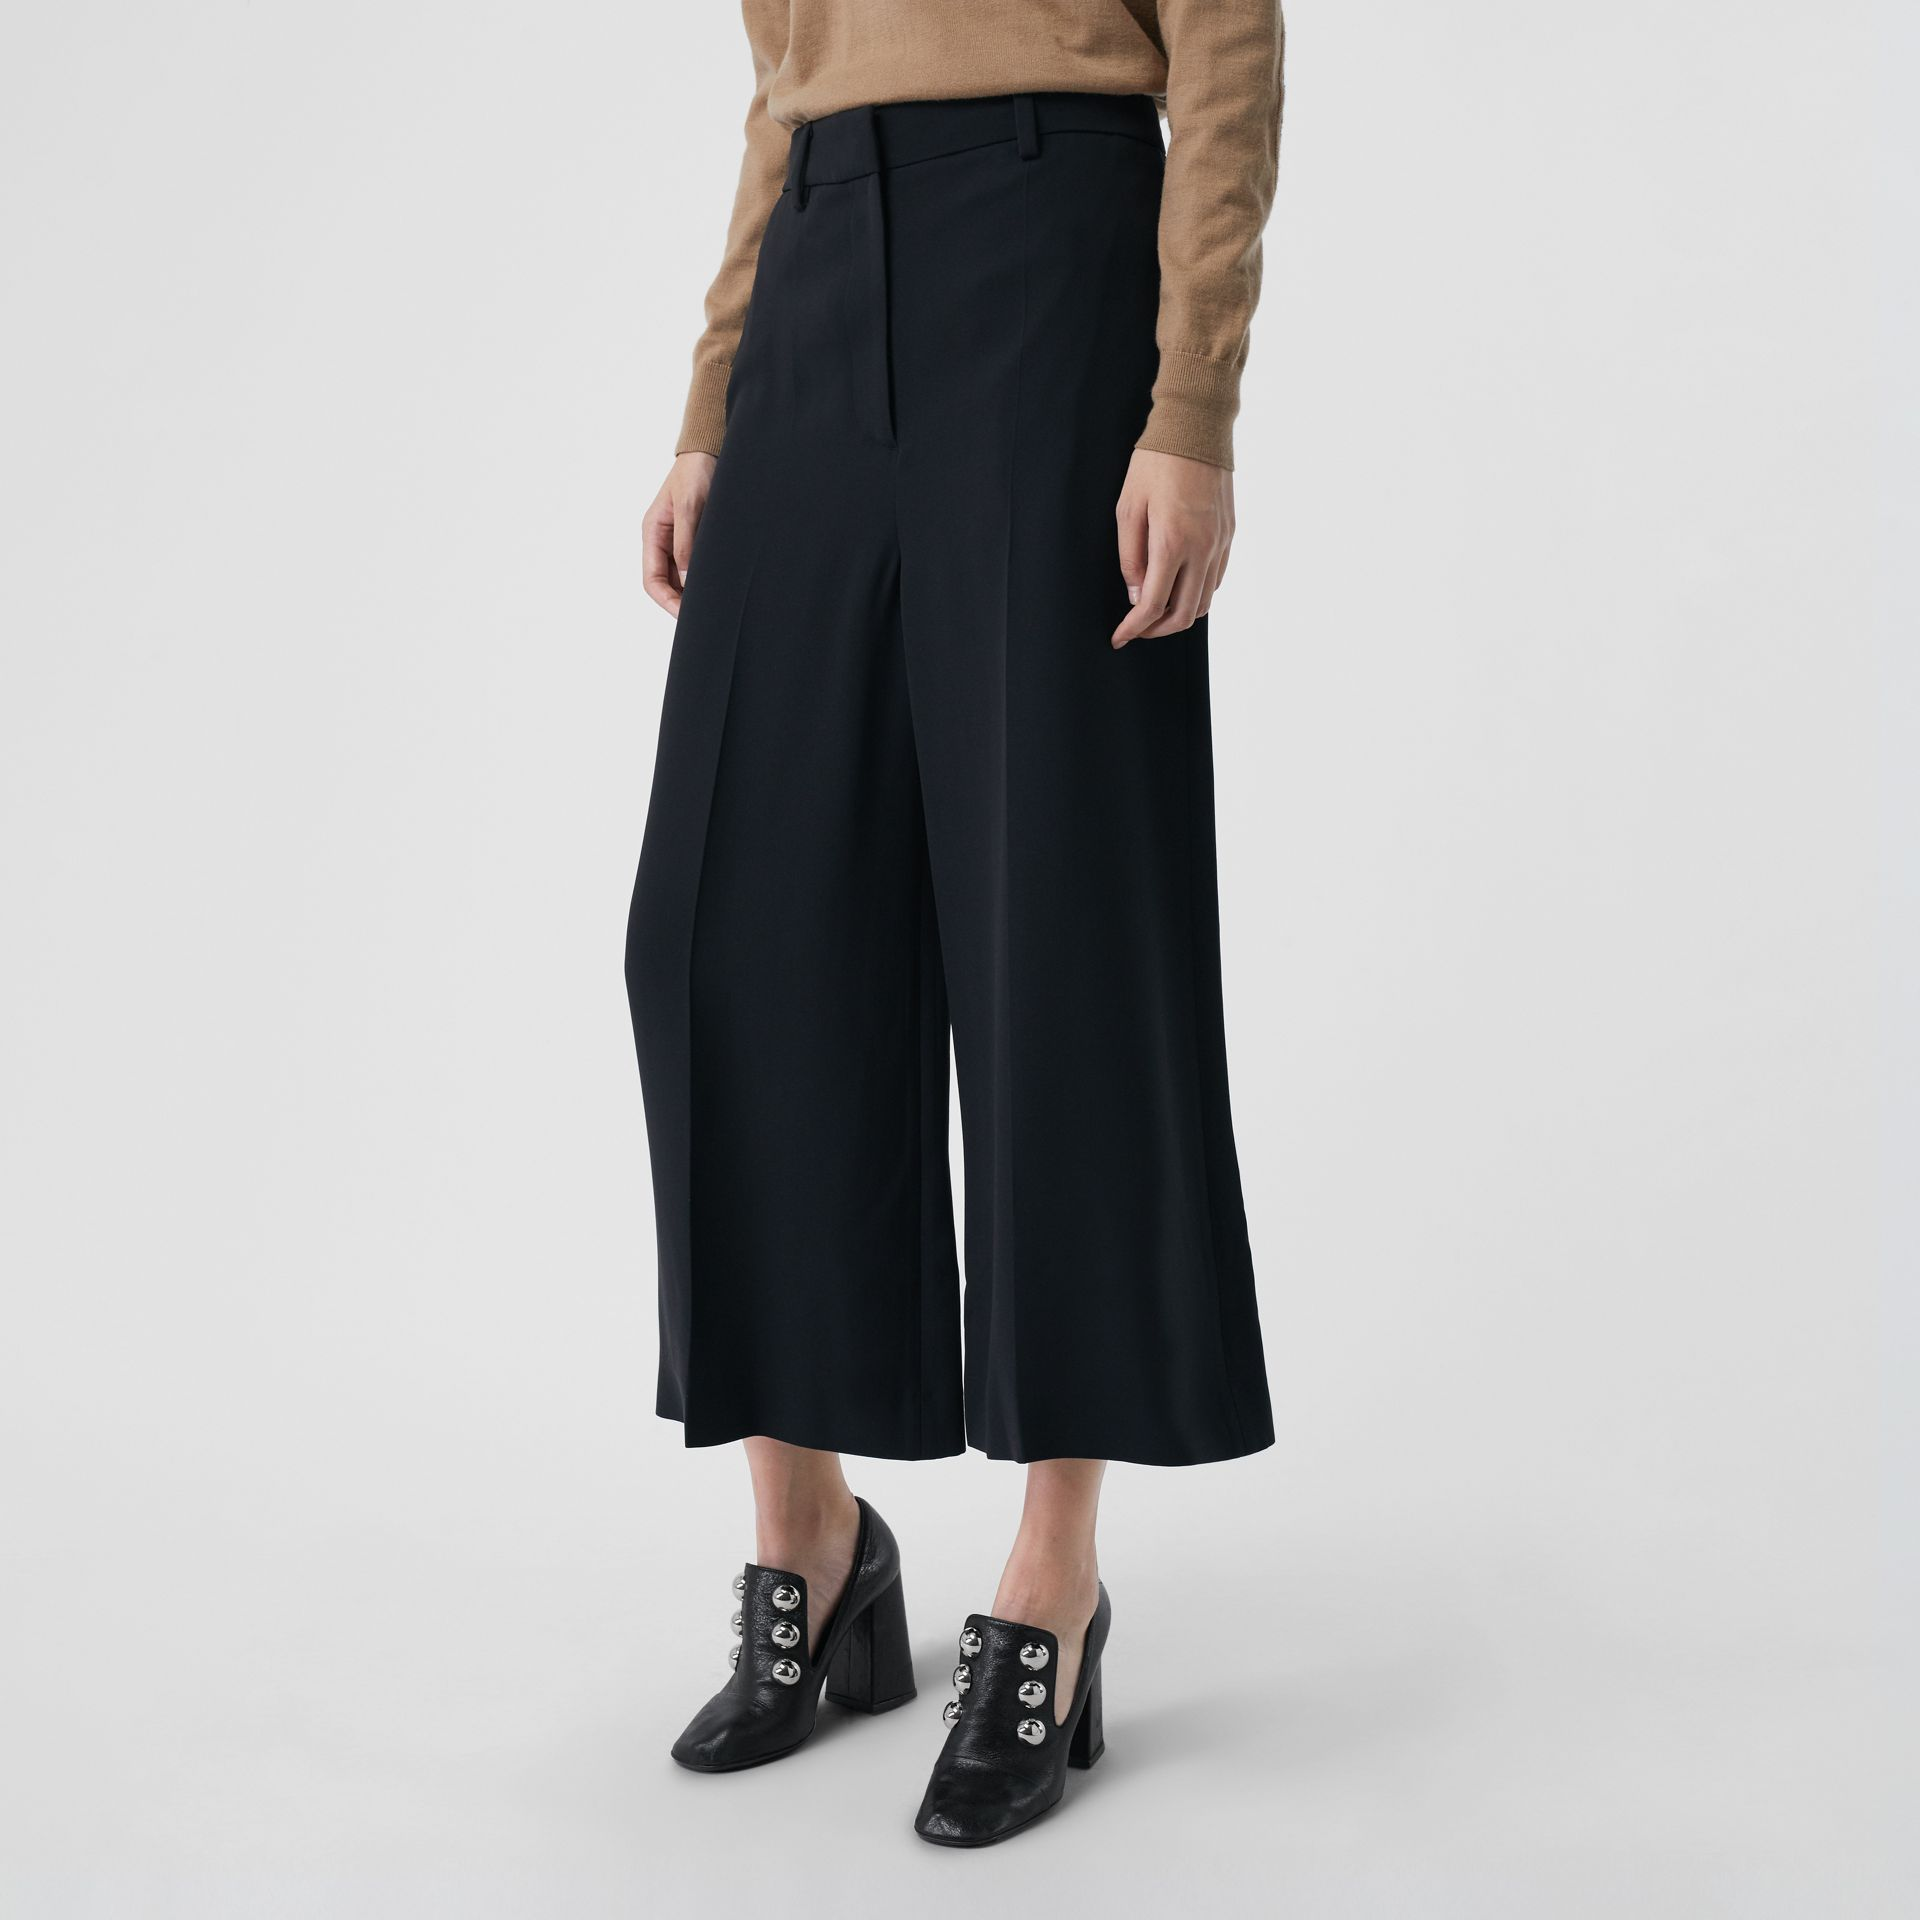 Silk Wool Tailored Culottes in Black - Women | Burberry United Kingdom - gallery image 4